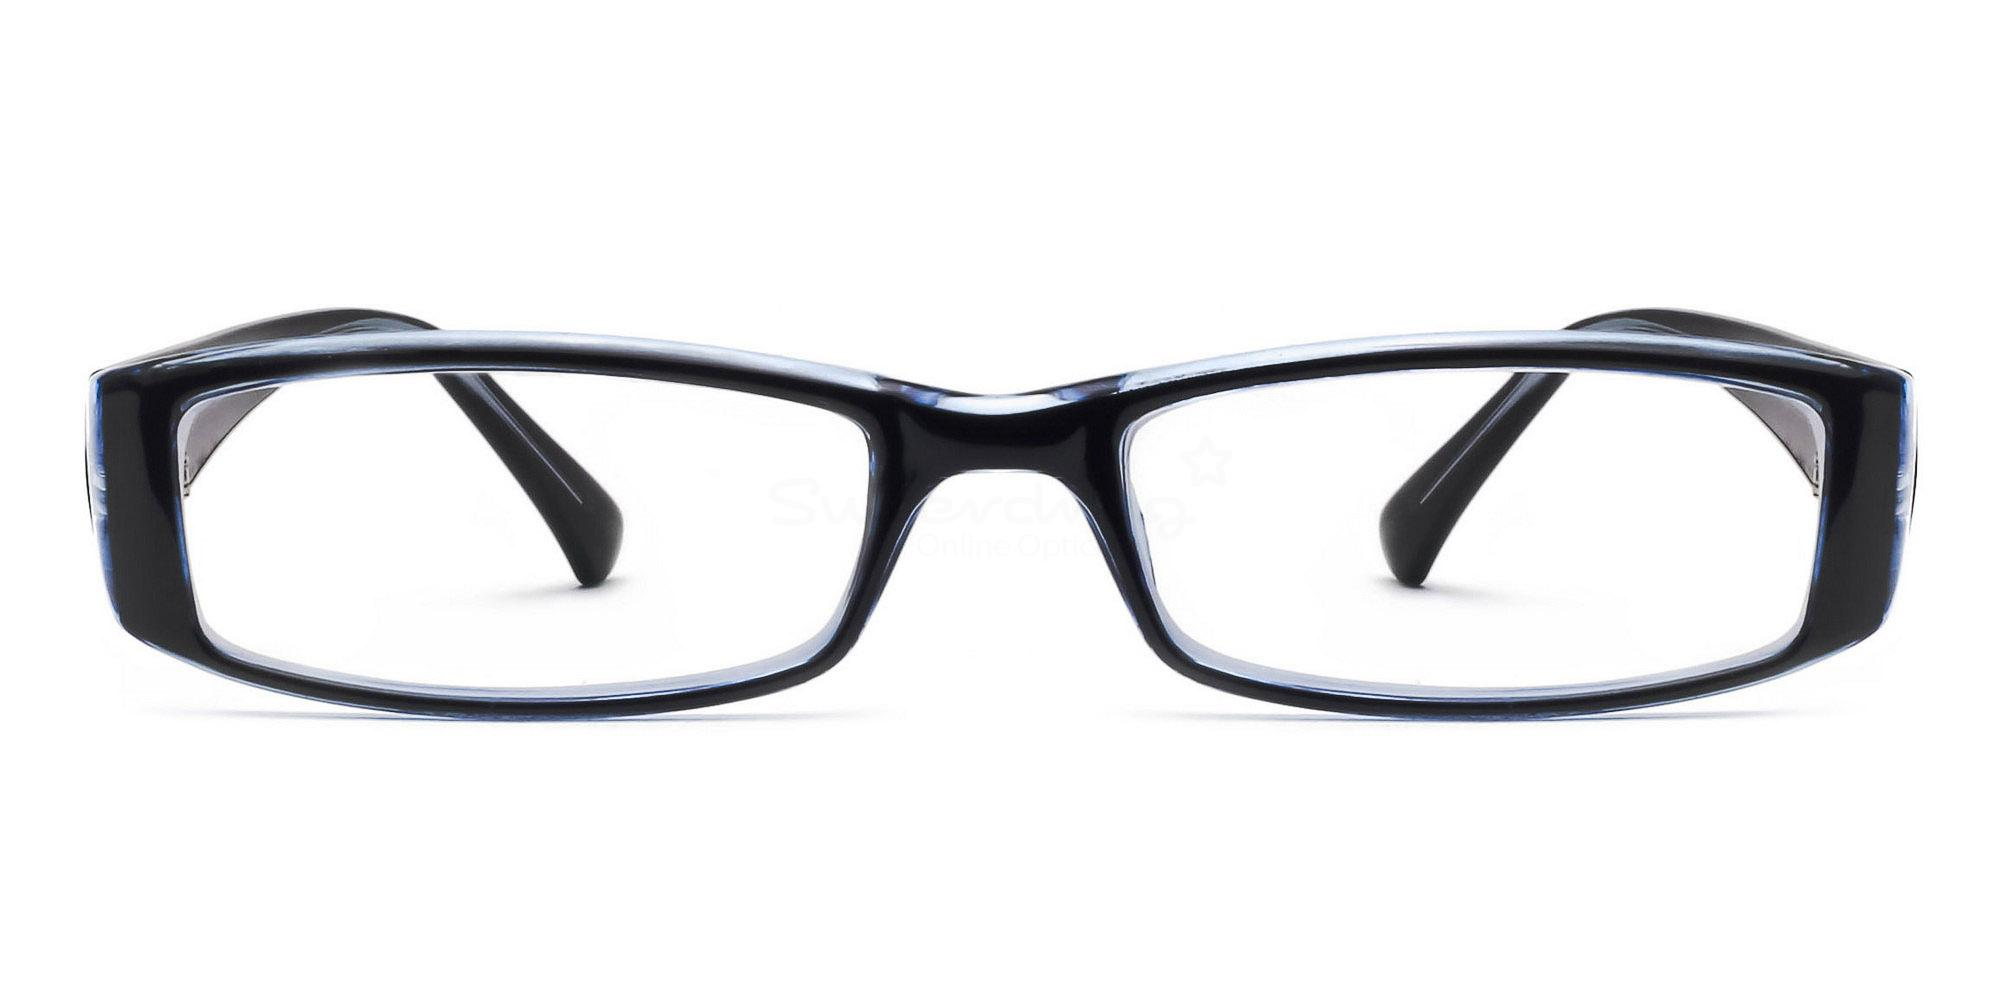 C48 P2251 - Black and Blue Glasses, Helium